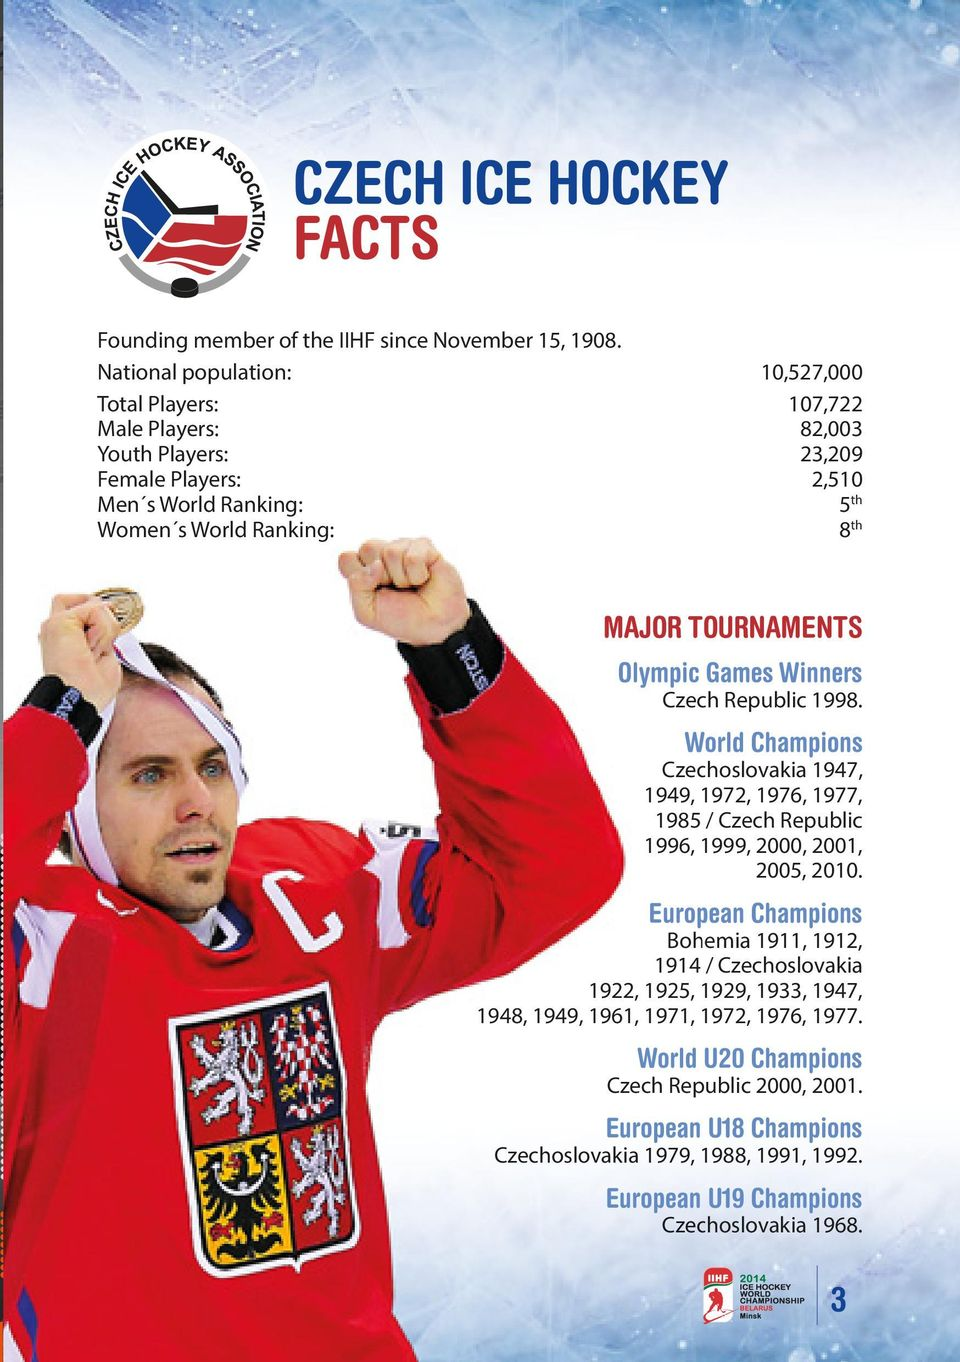 TOURNAMENTS Olympic Games Winners Czech Republic 1998. World Champions Czechoslovakia 1947, 1949, 1972, 1976, 1977, 1985 / Czech Republic 1996, 1999, 2000, 2001, 2005, 2010.